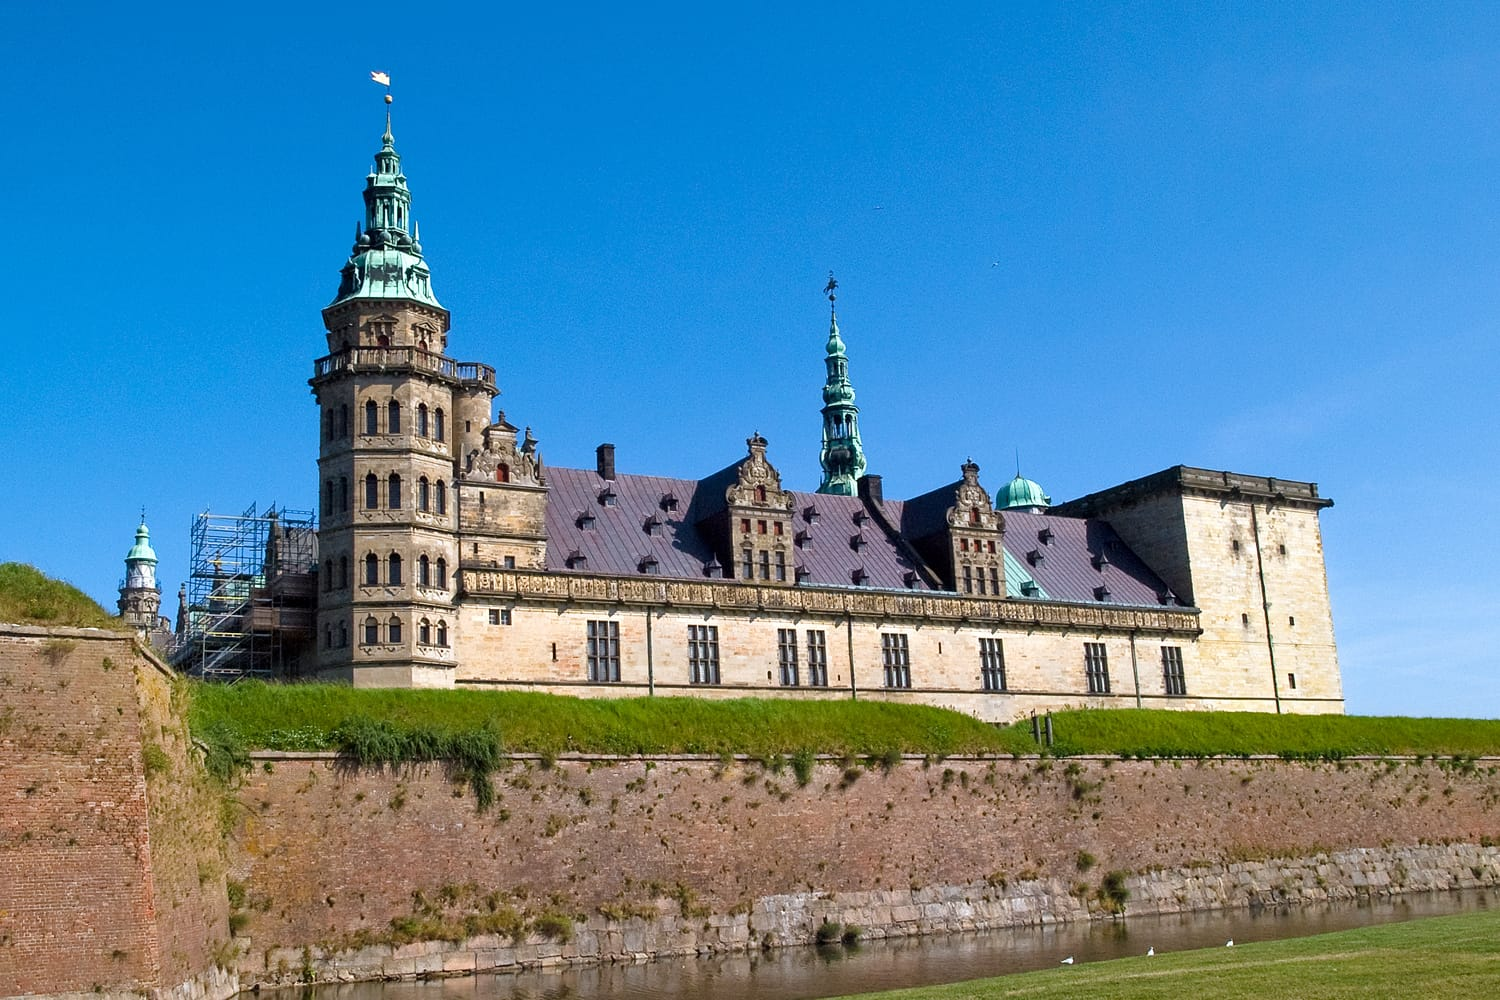 Kronborg Castle of Hamlet by William Shakespeare Elsinore Helsingor Denmark